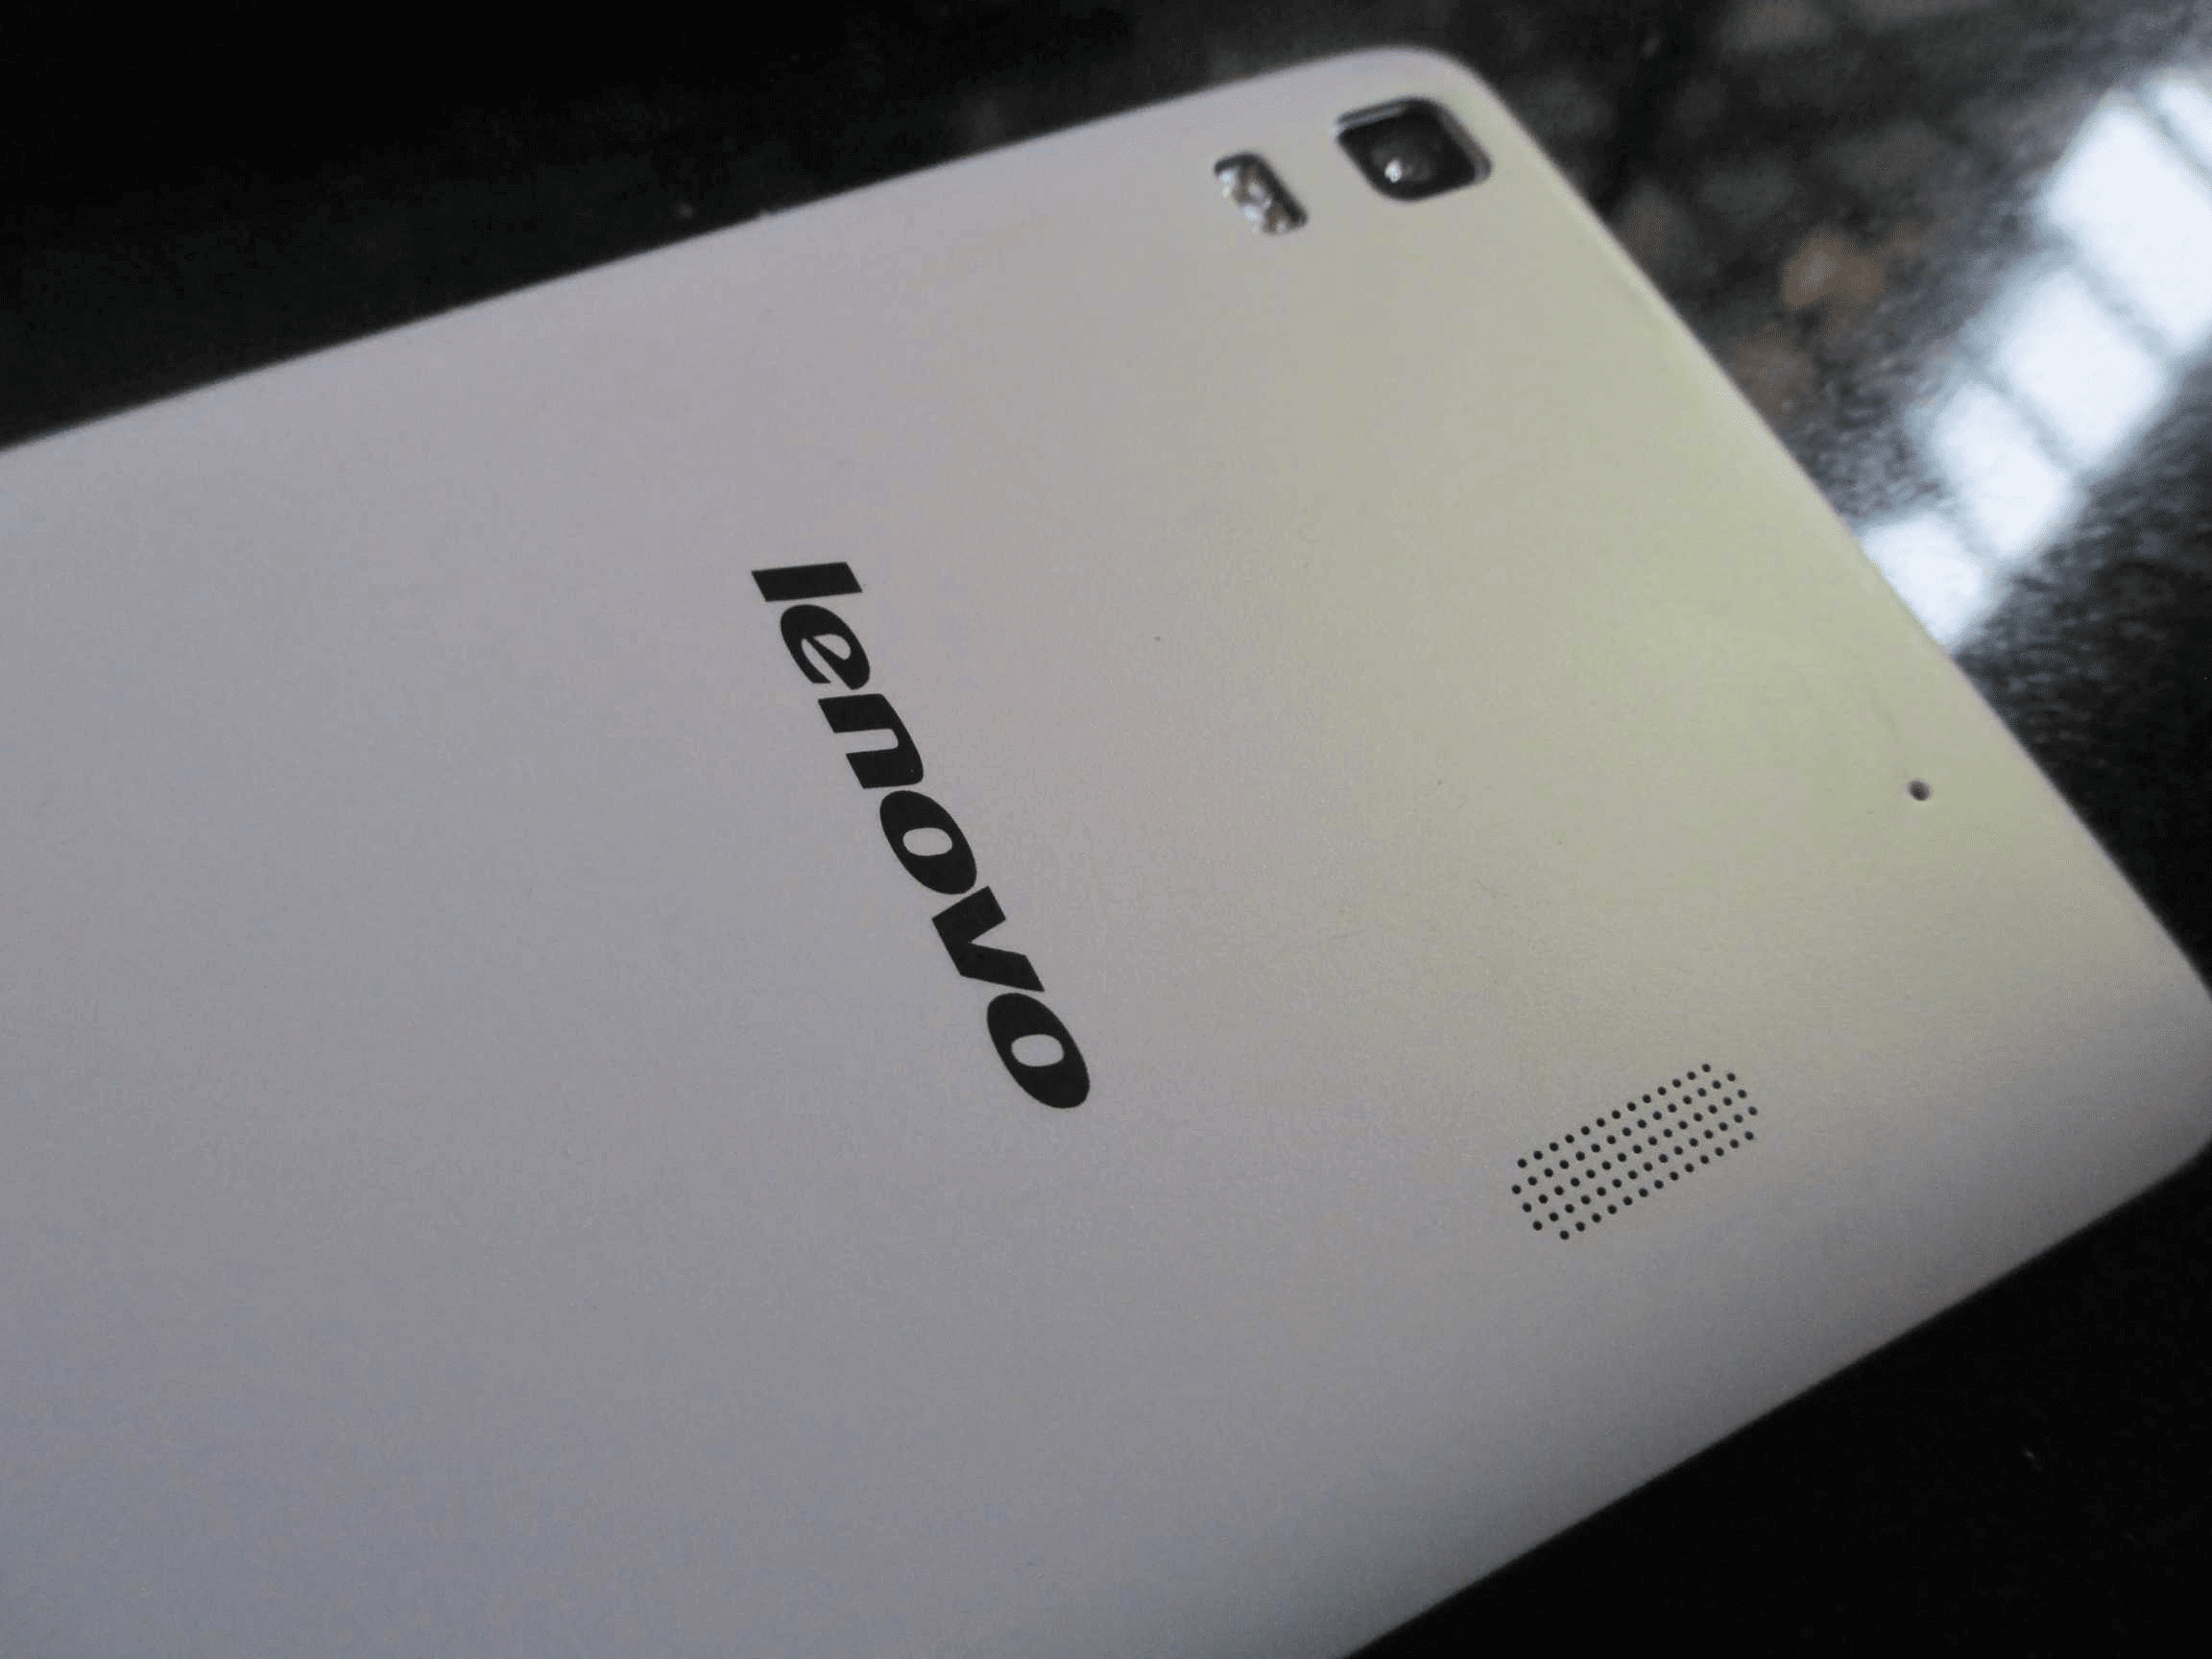 Lenovo K3 Note updated Android 8.0 Oreo Lineage OS 15 ROM